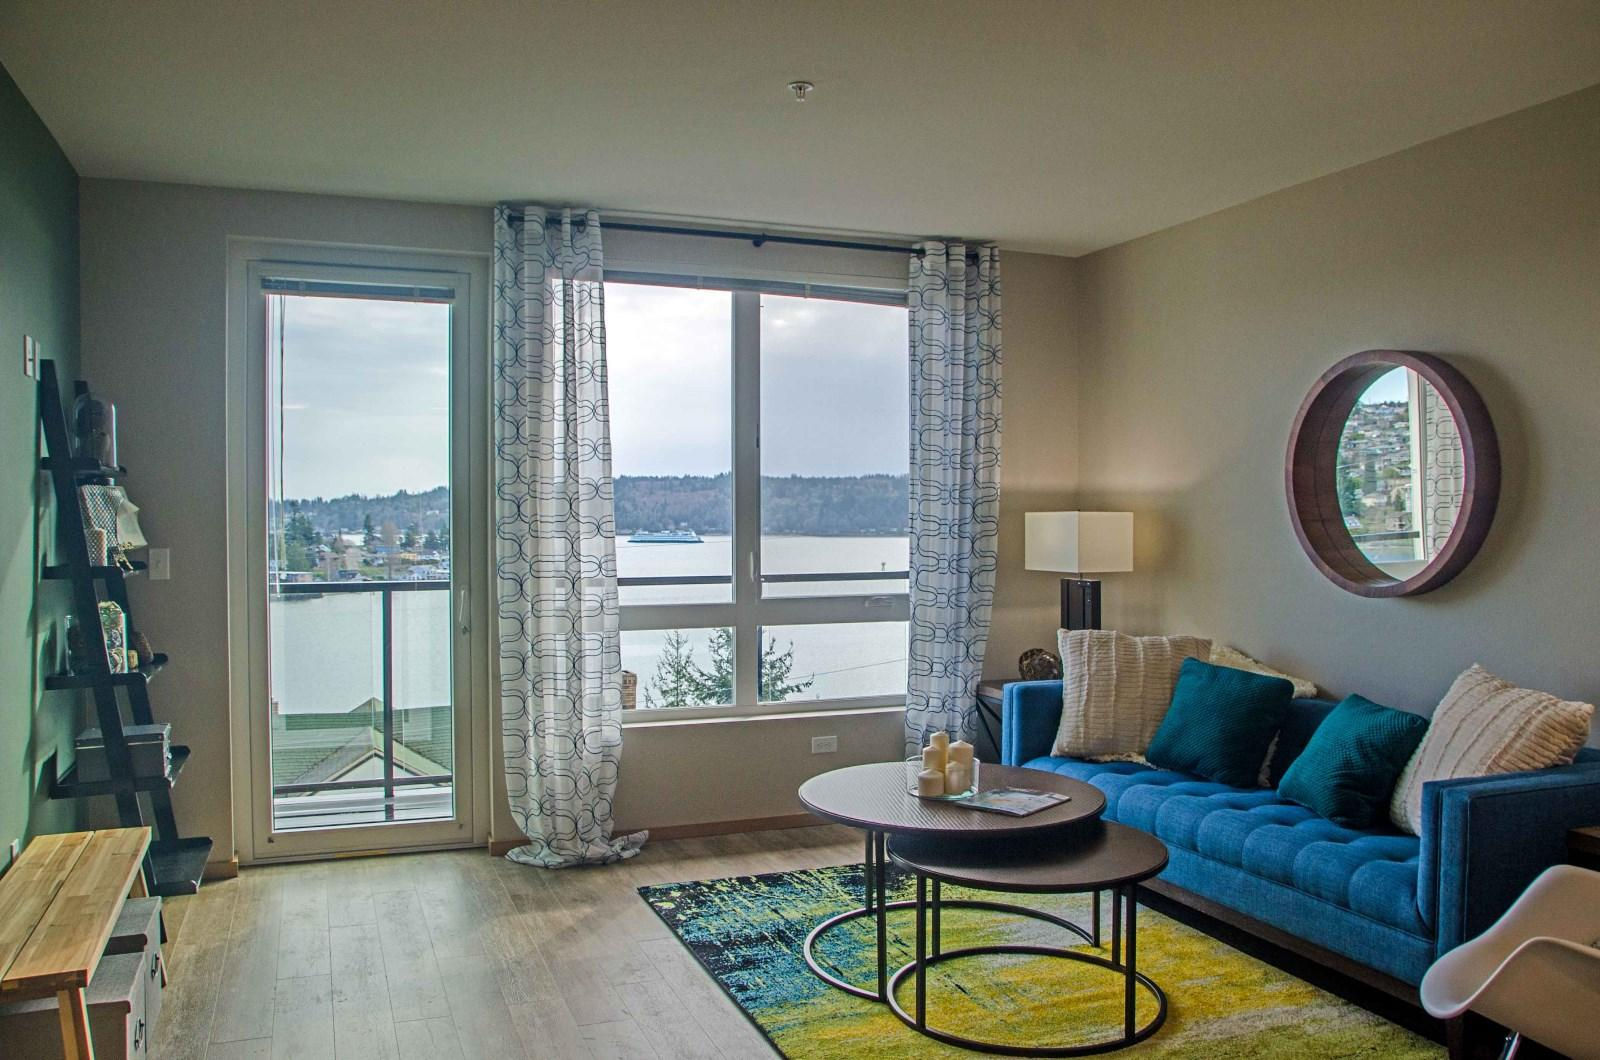 This Lovely Apartment Could Be Yours For Only... [who Knows?]